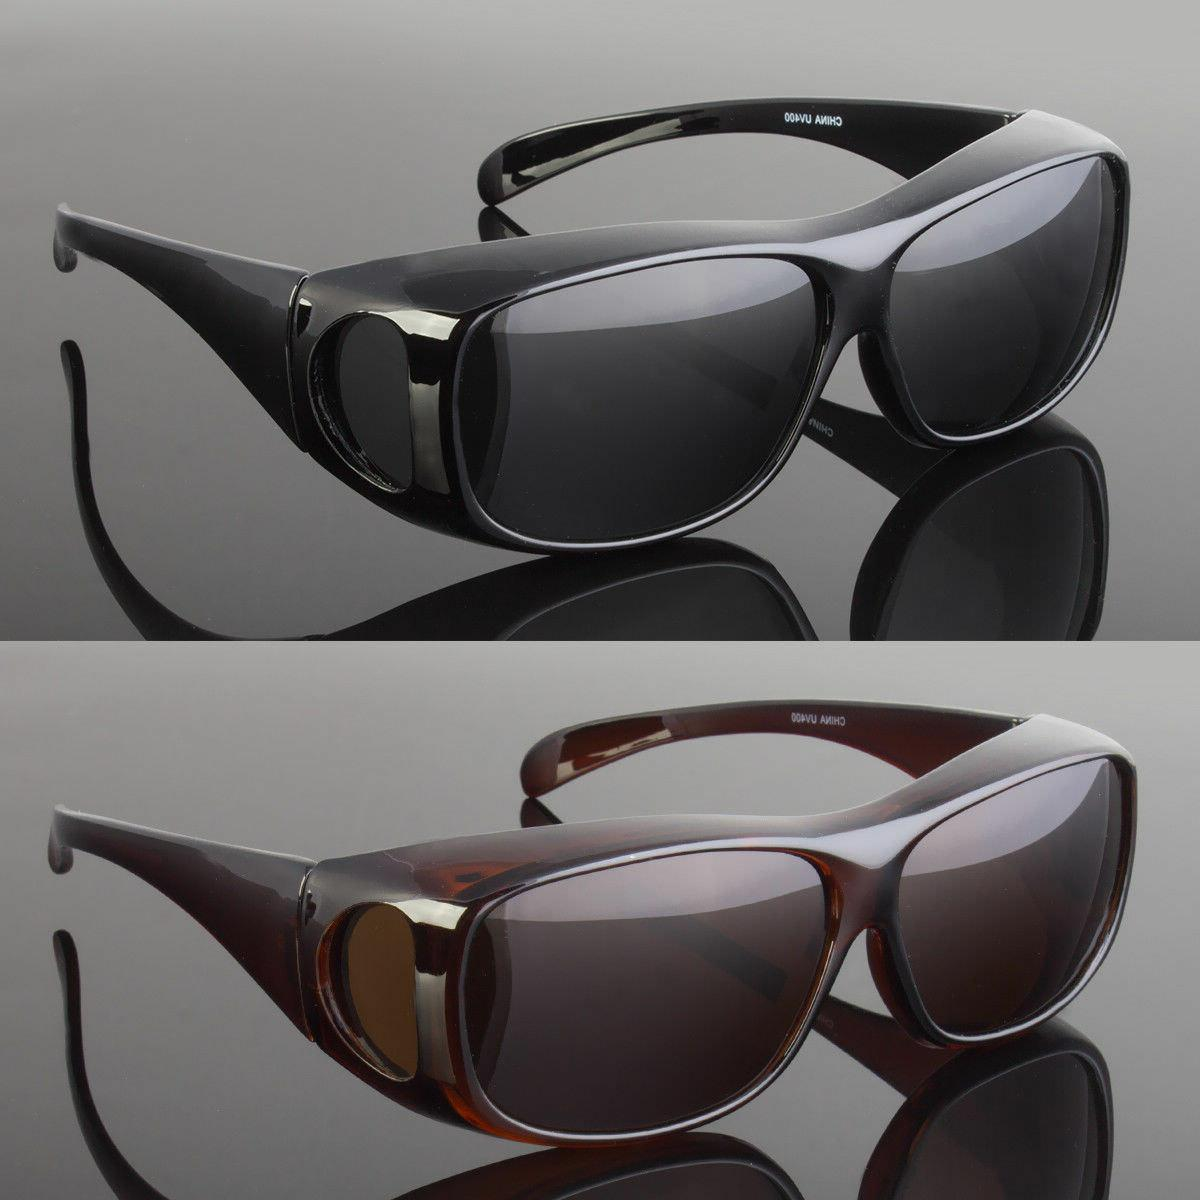 polarized solar shield fit over sunglasses cover